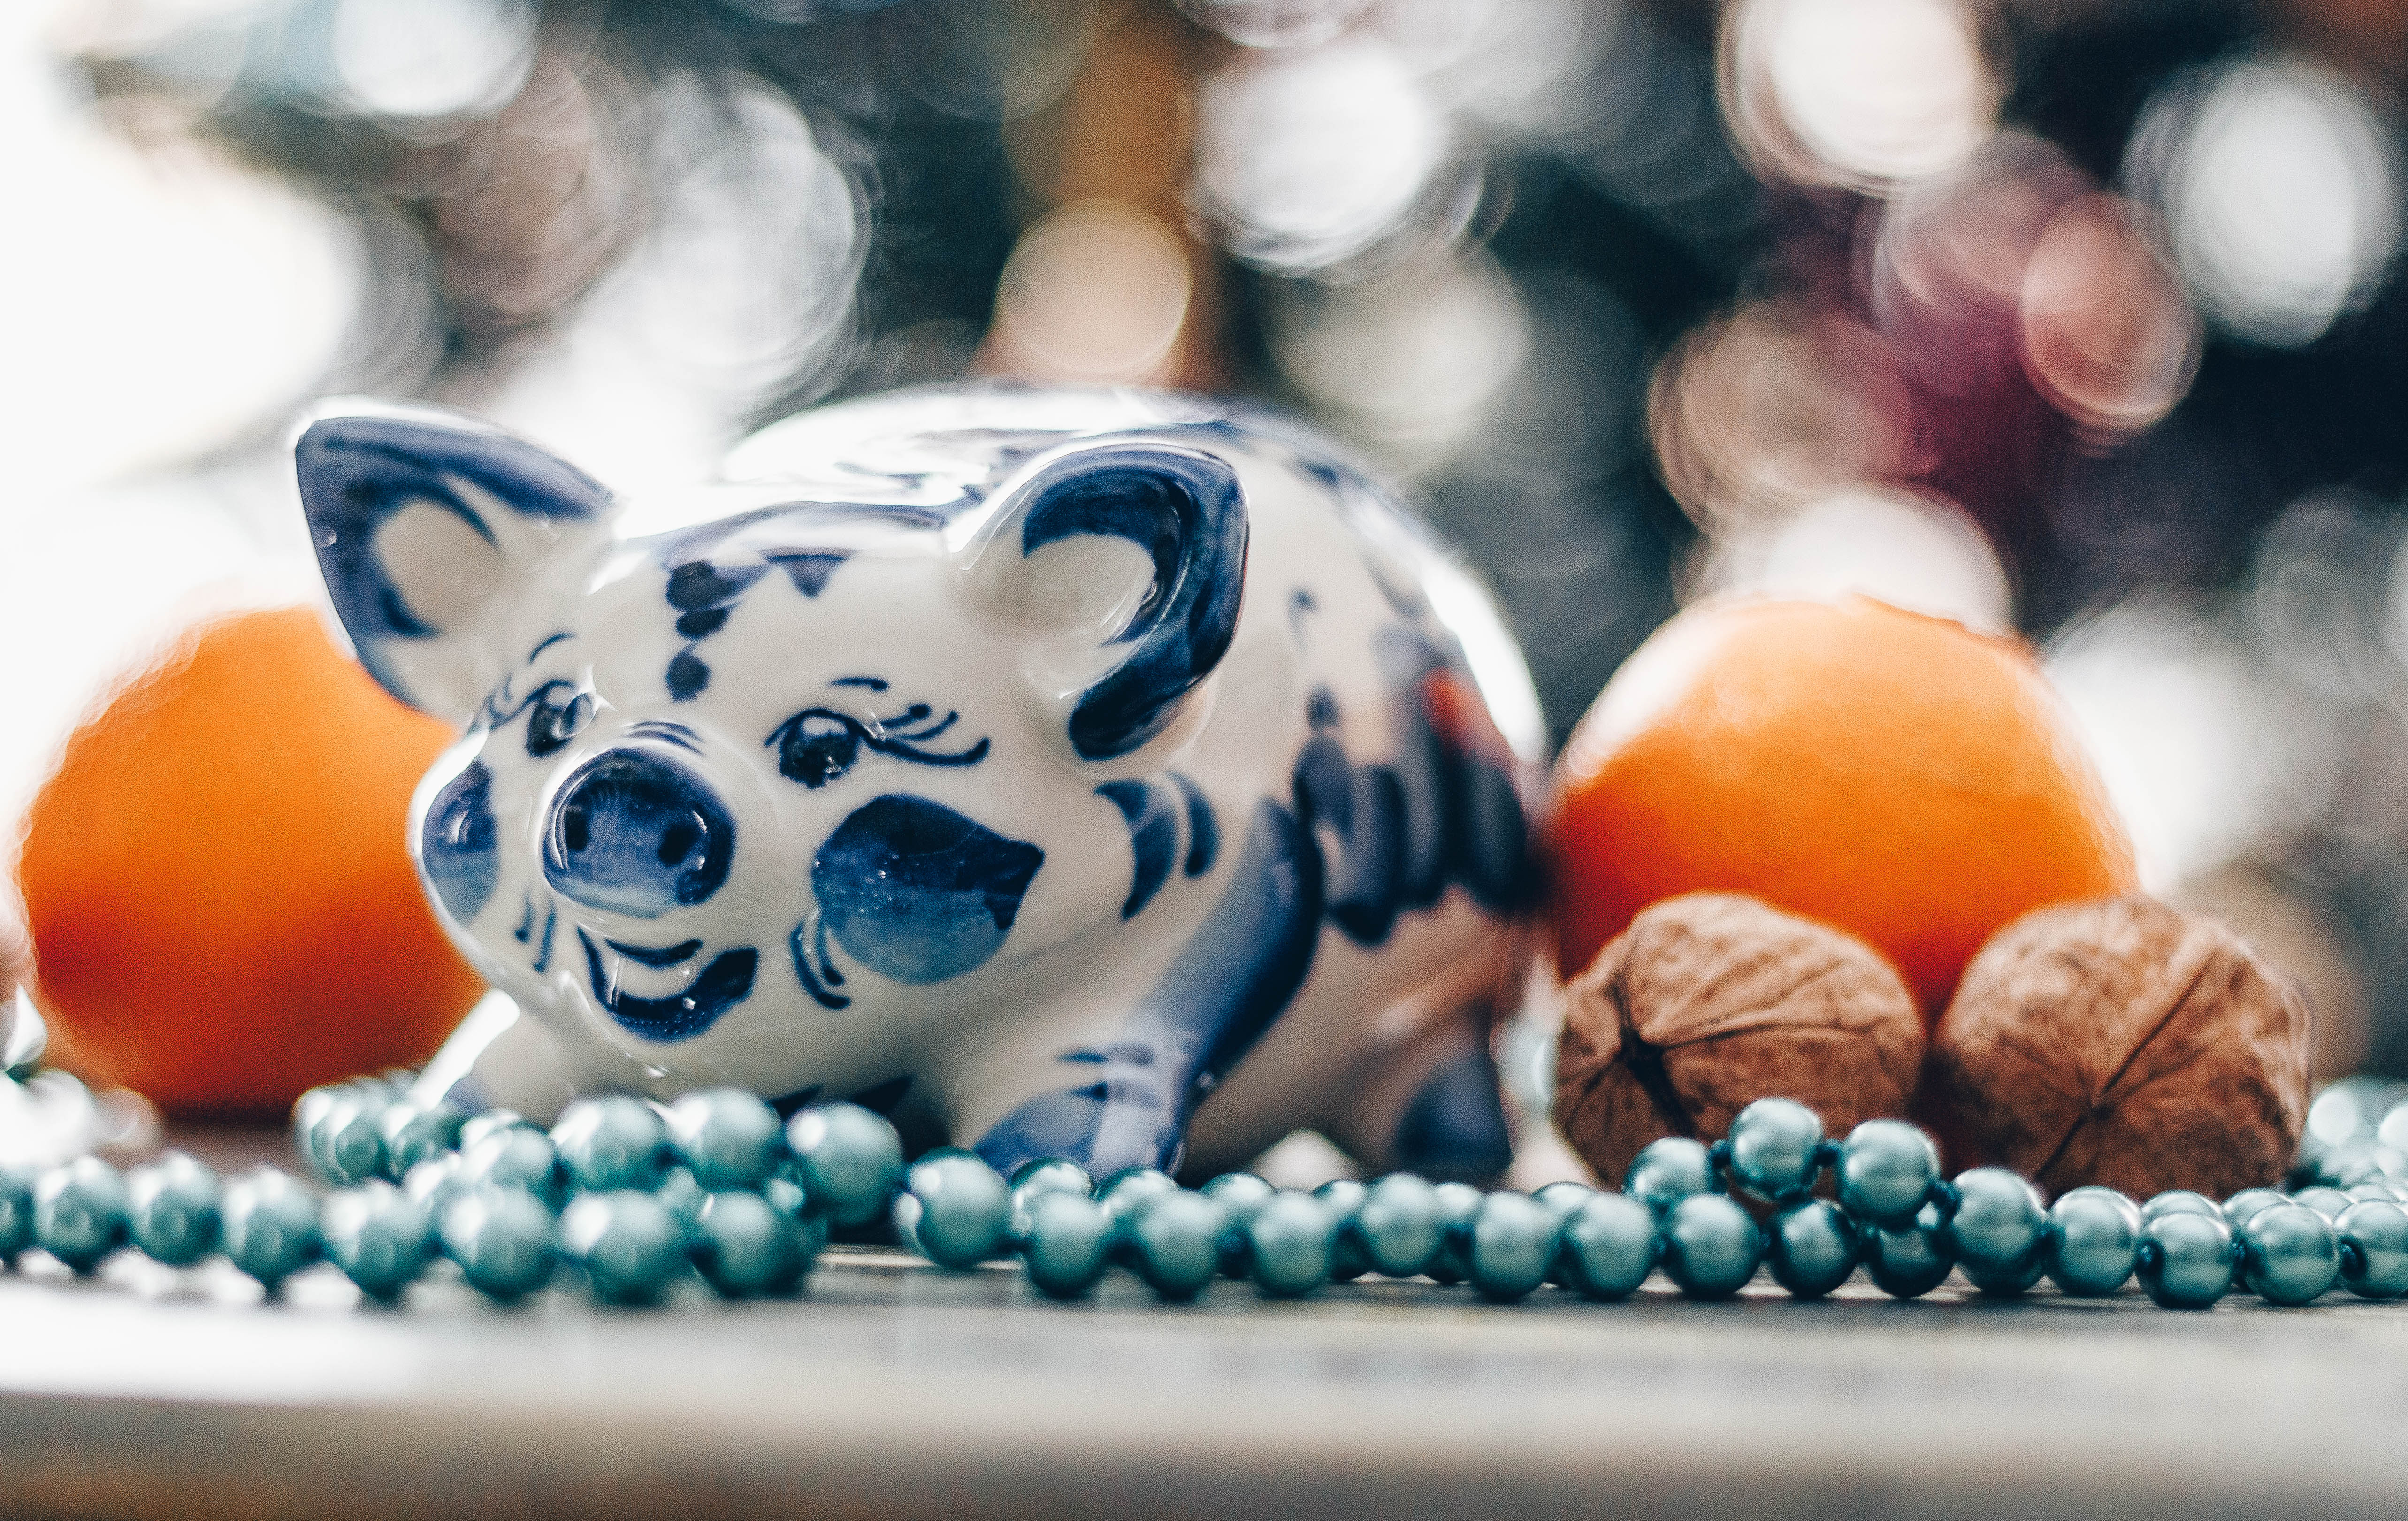 Lunar New Year: Why the Pig Zodiac Sign Is Important in 2019